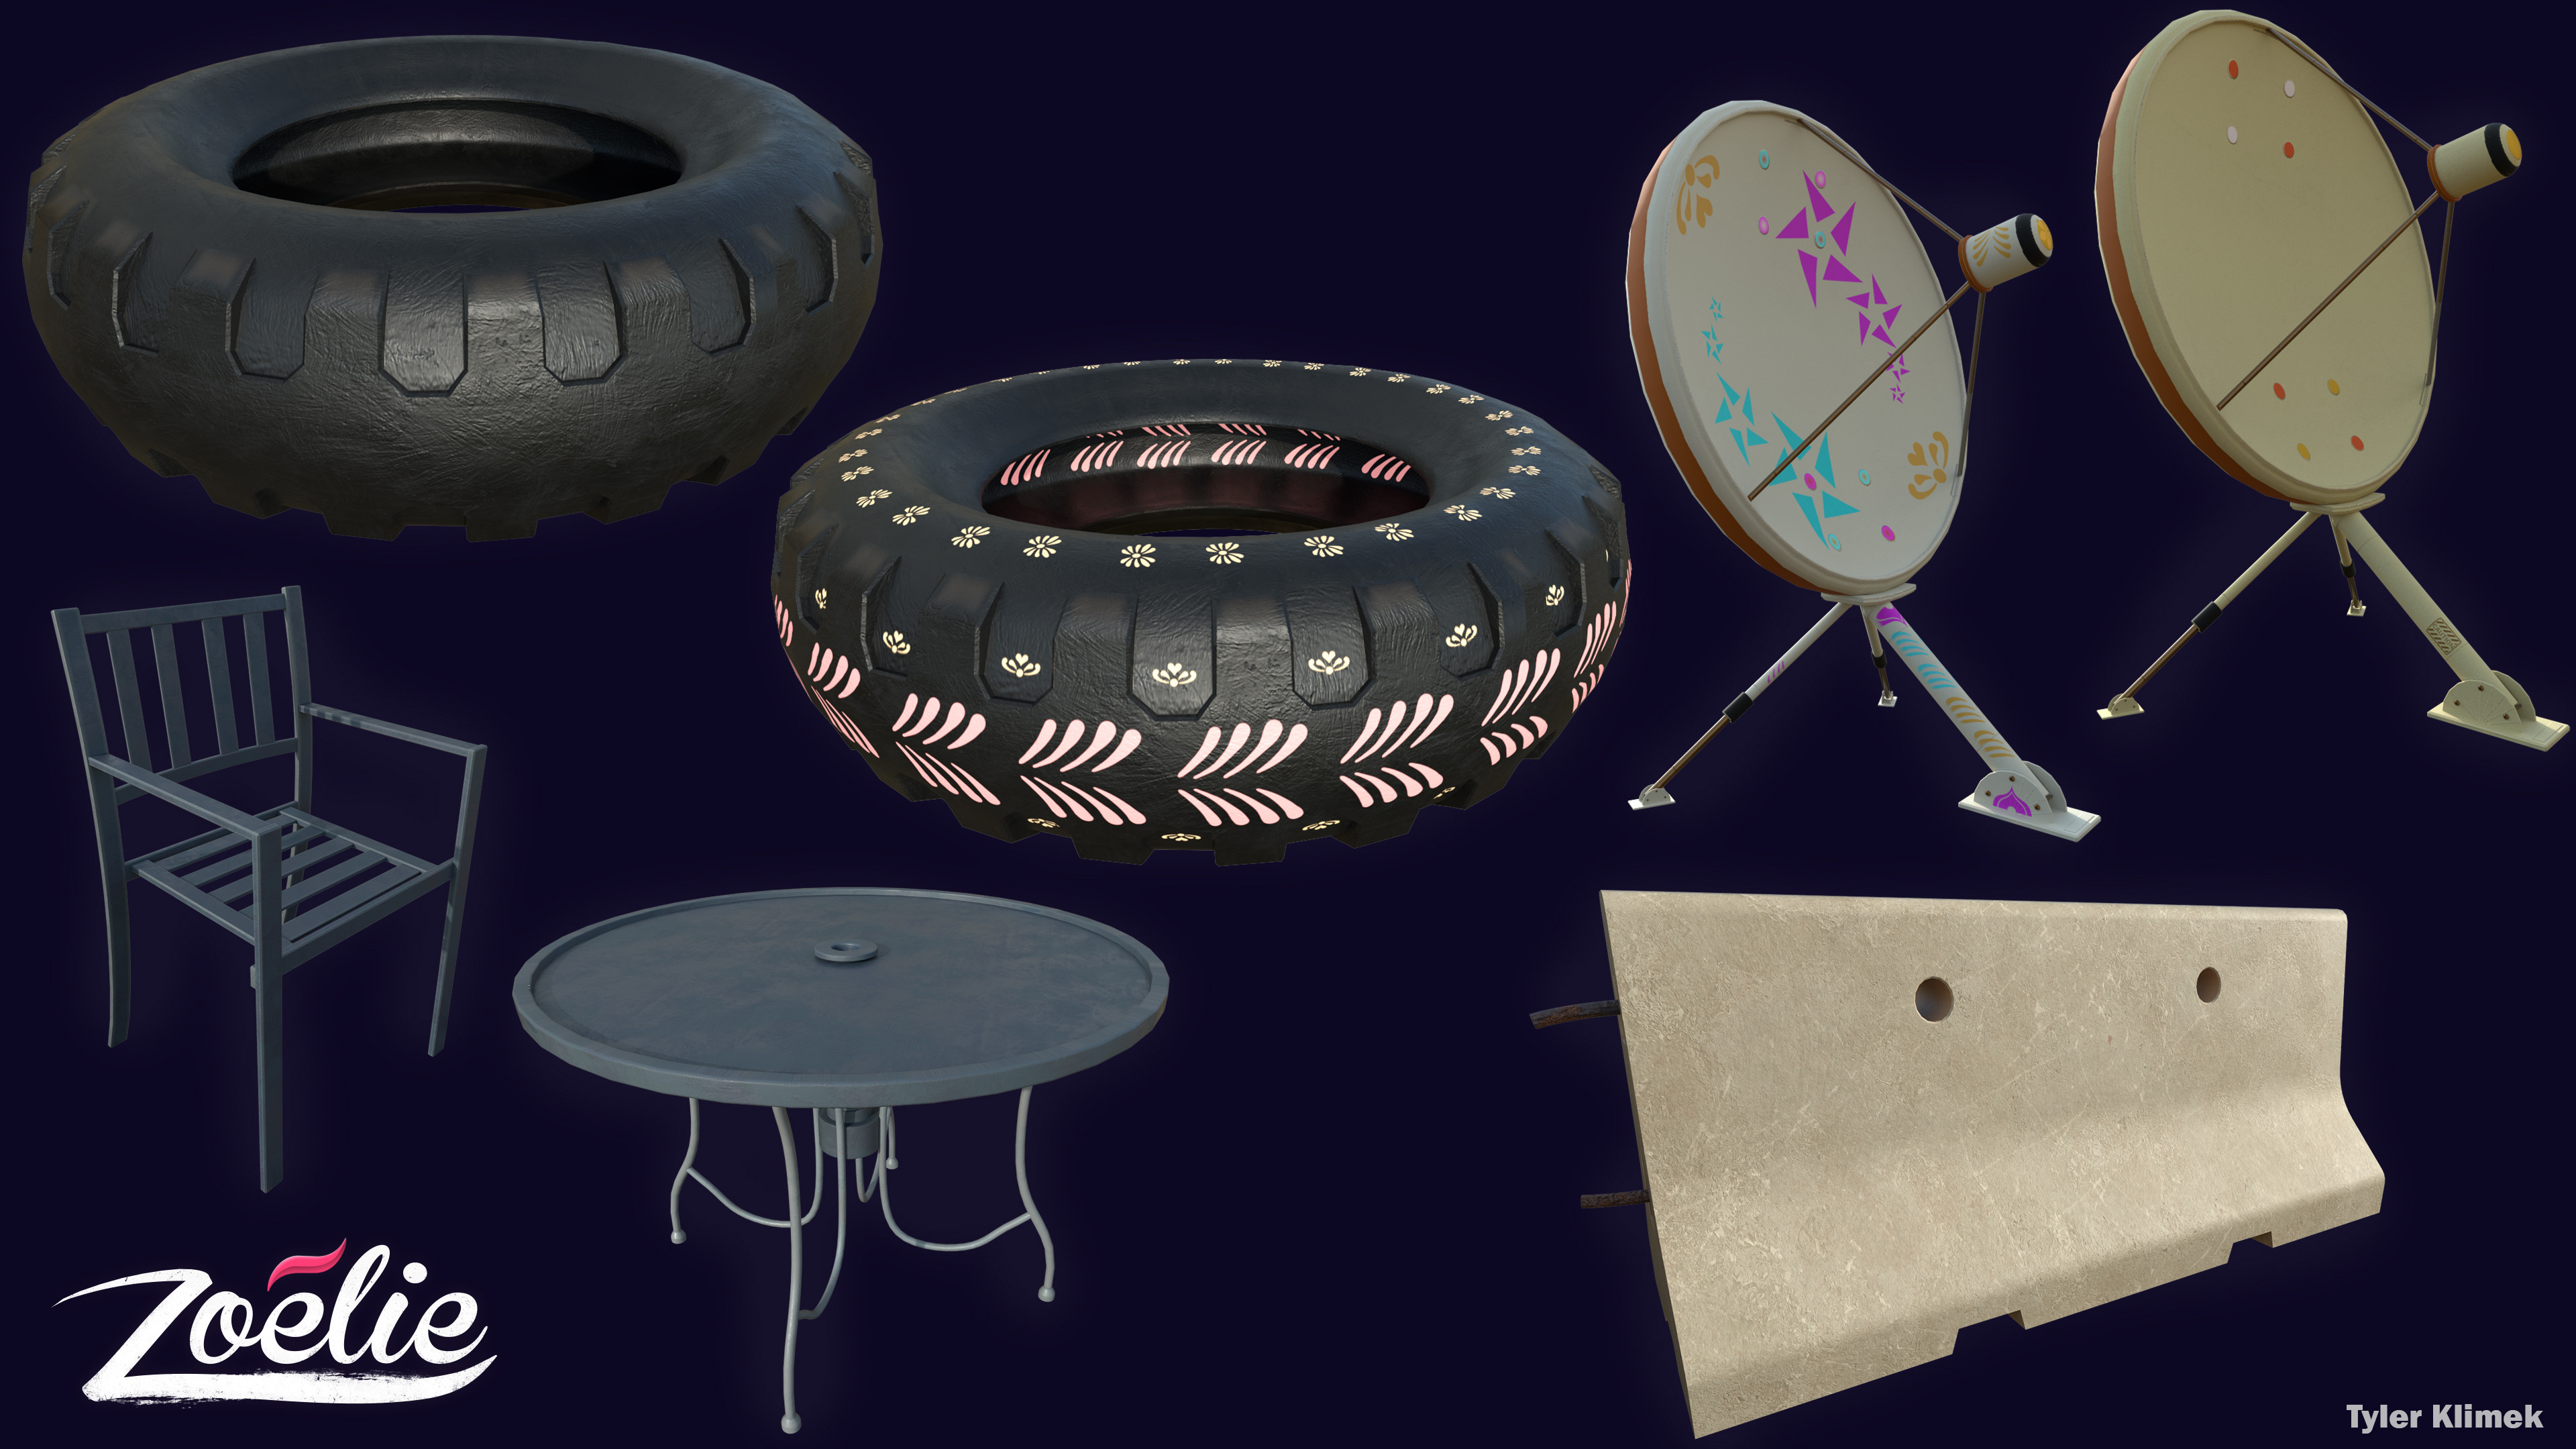 Other assets I created that are not in individual renders: